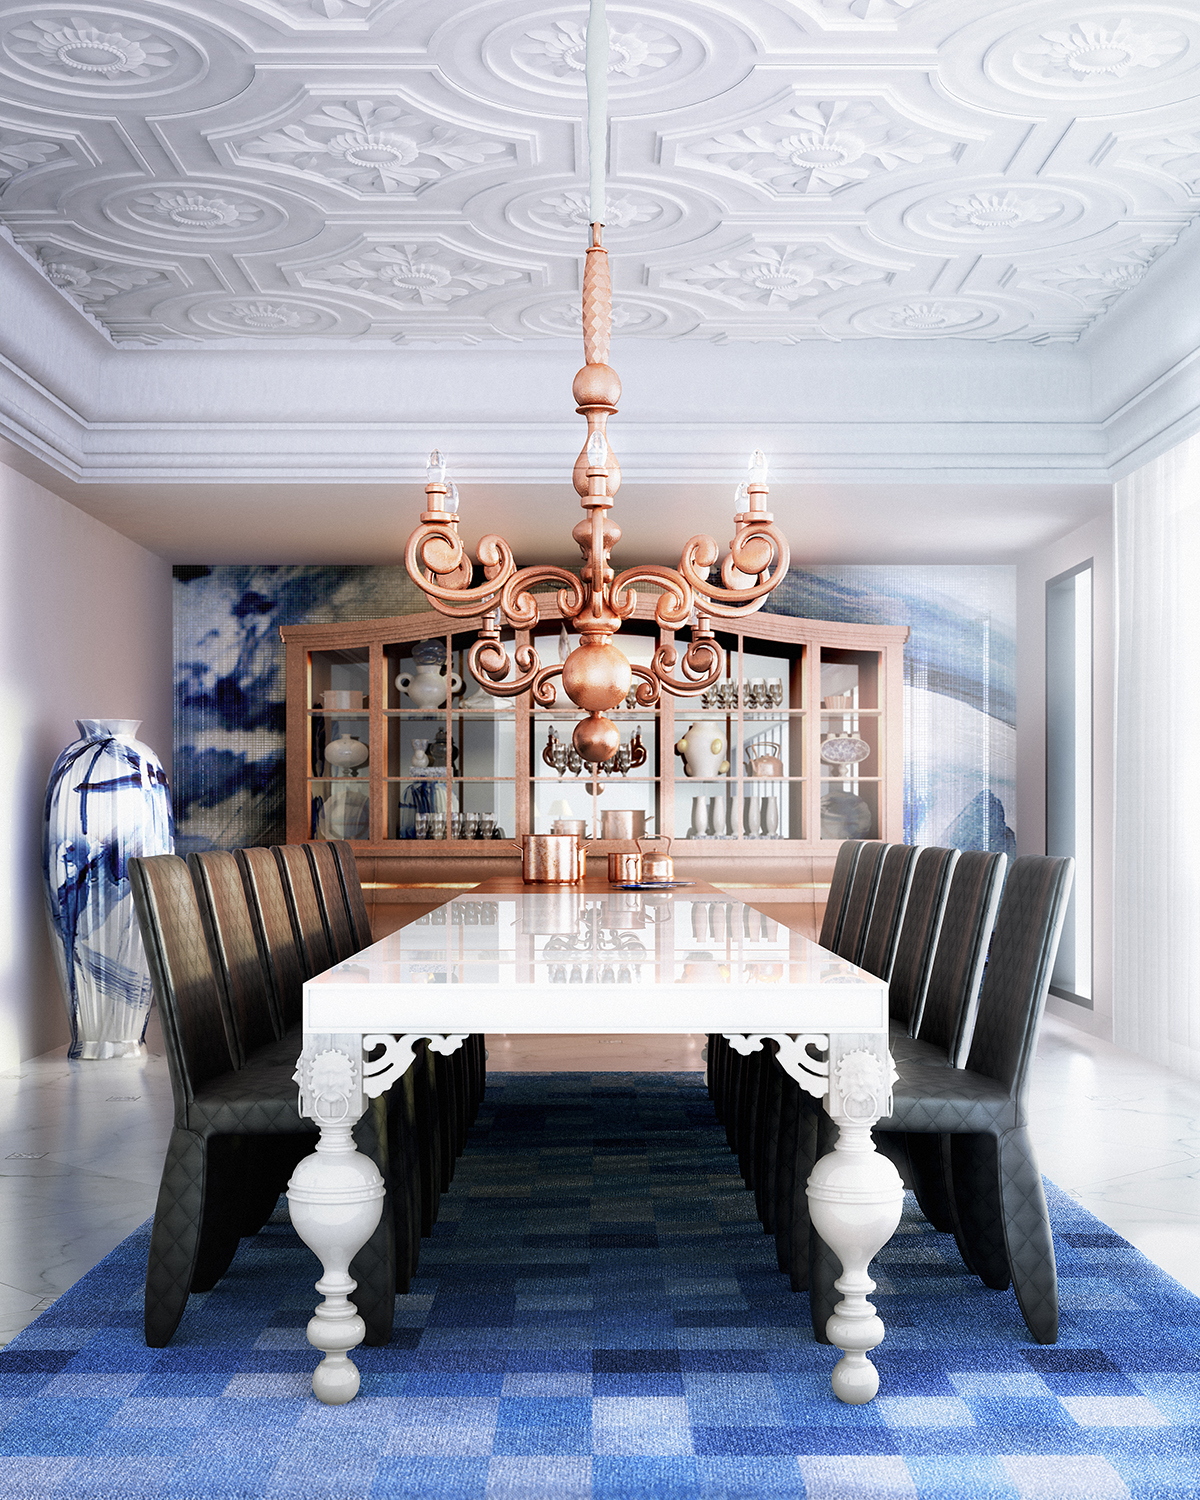 marcel wanders Luxurious Dining Room Ideas By Top Interior Designer Marcel Wanders 1 Luxurious Dining Room Ideas By Top Interior Designer Marcel Wanders